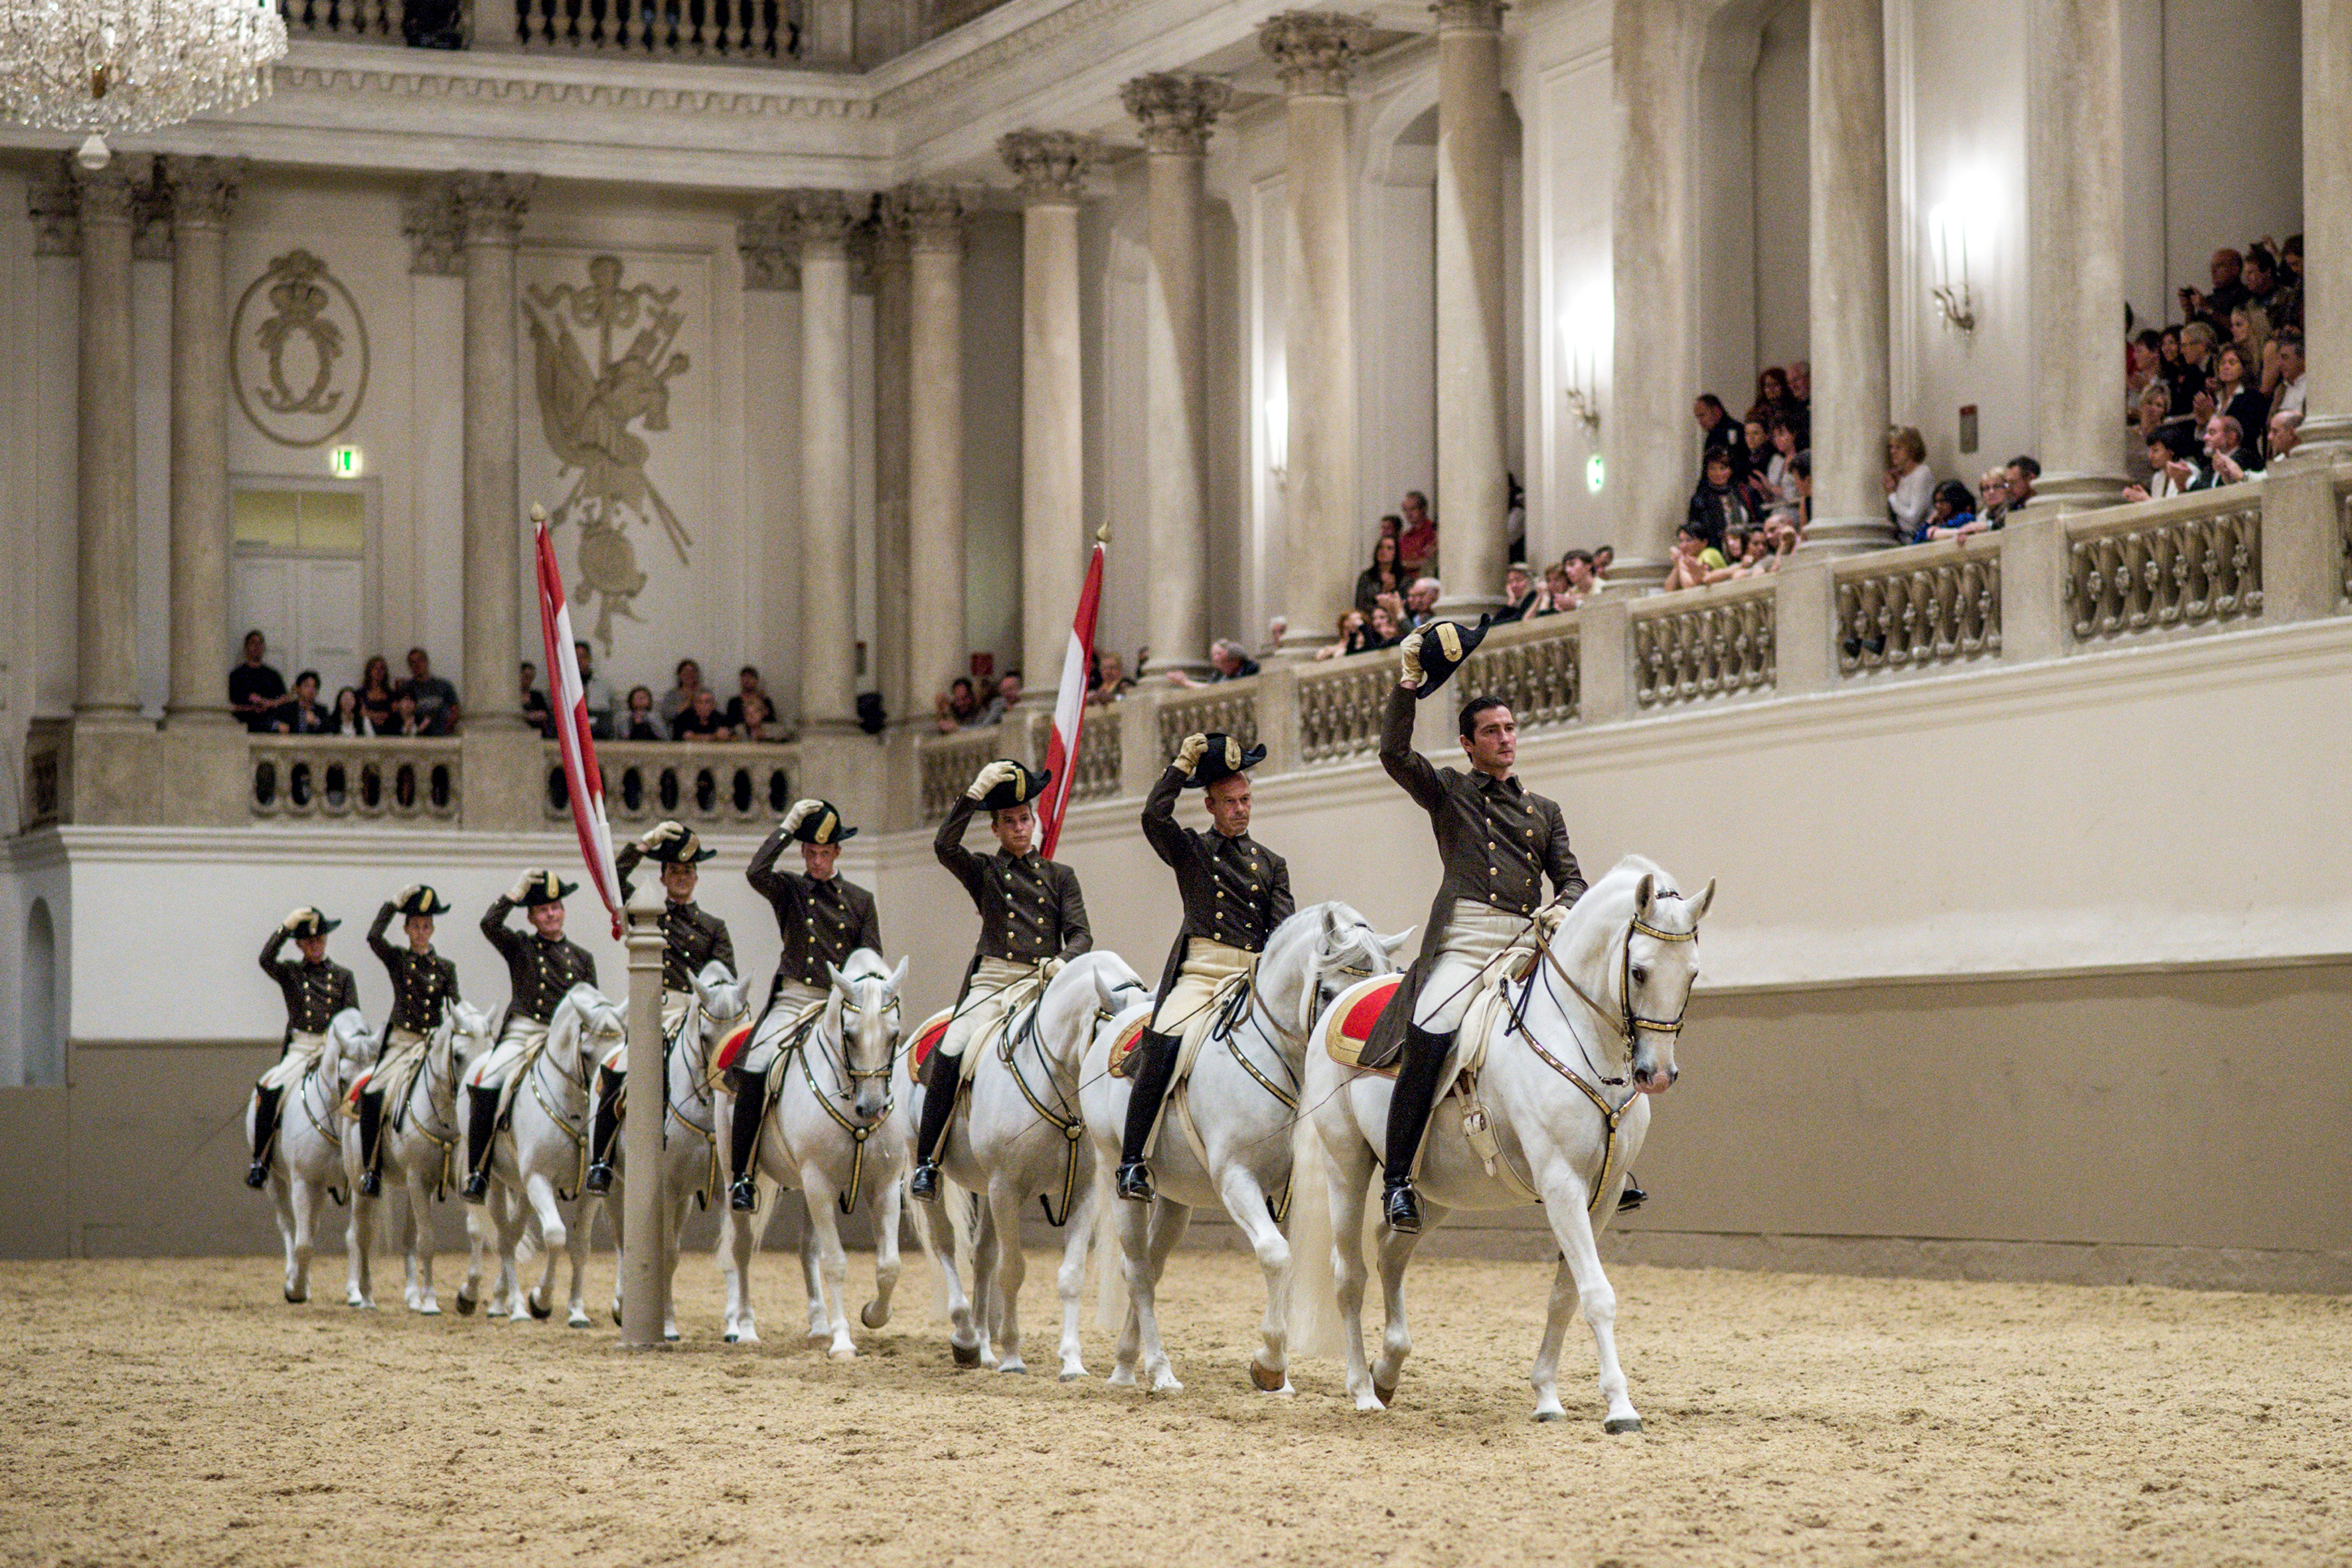 http://www.thirteen.org/13pressroom/press-release/nature-season-31-legendary-white-stallions/